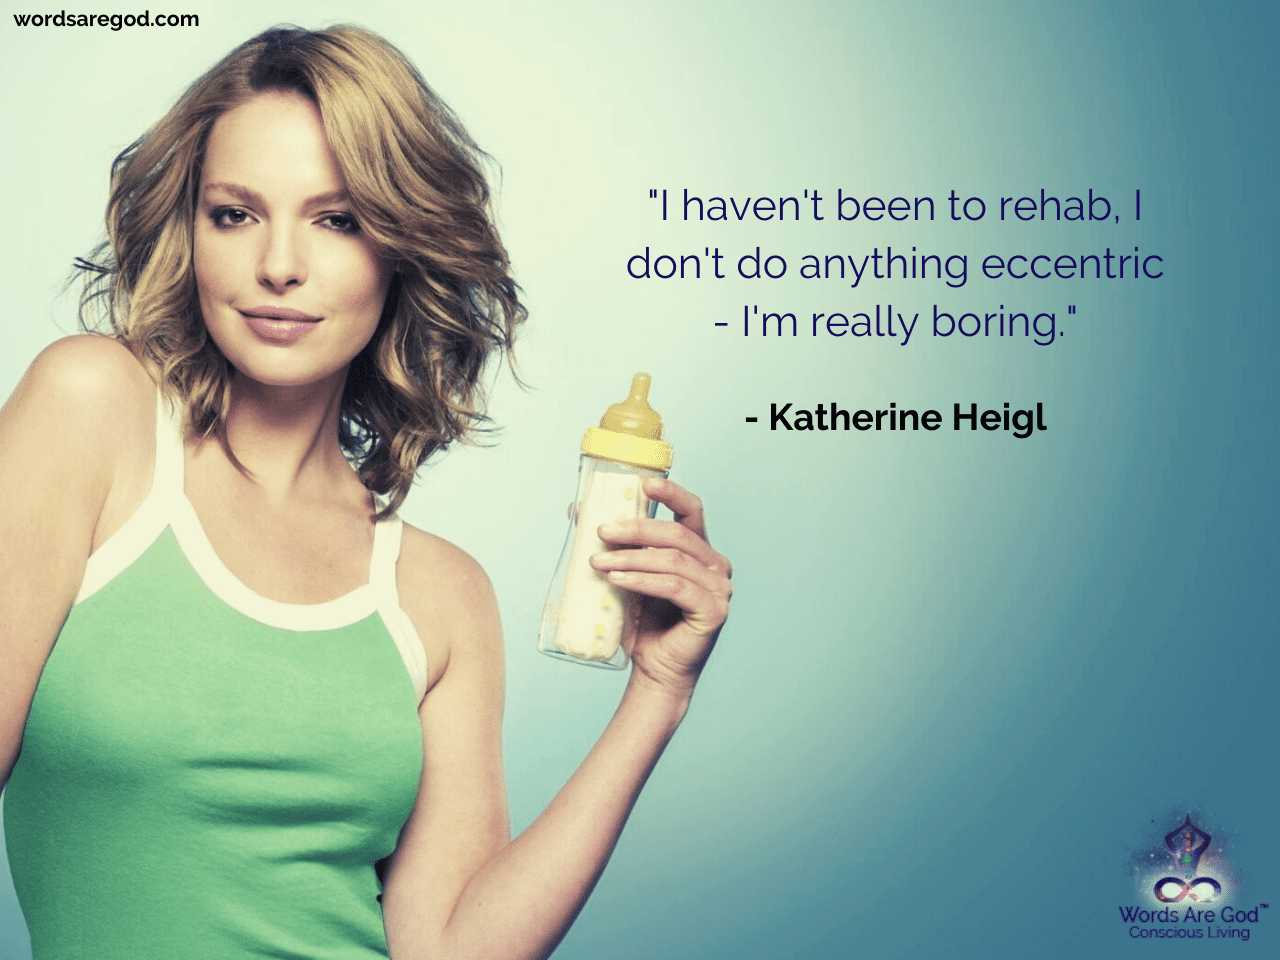 Katherine Heigl Quotes A Good Life Quotes Life Changing Quotes Friendship And Music Quotes